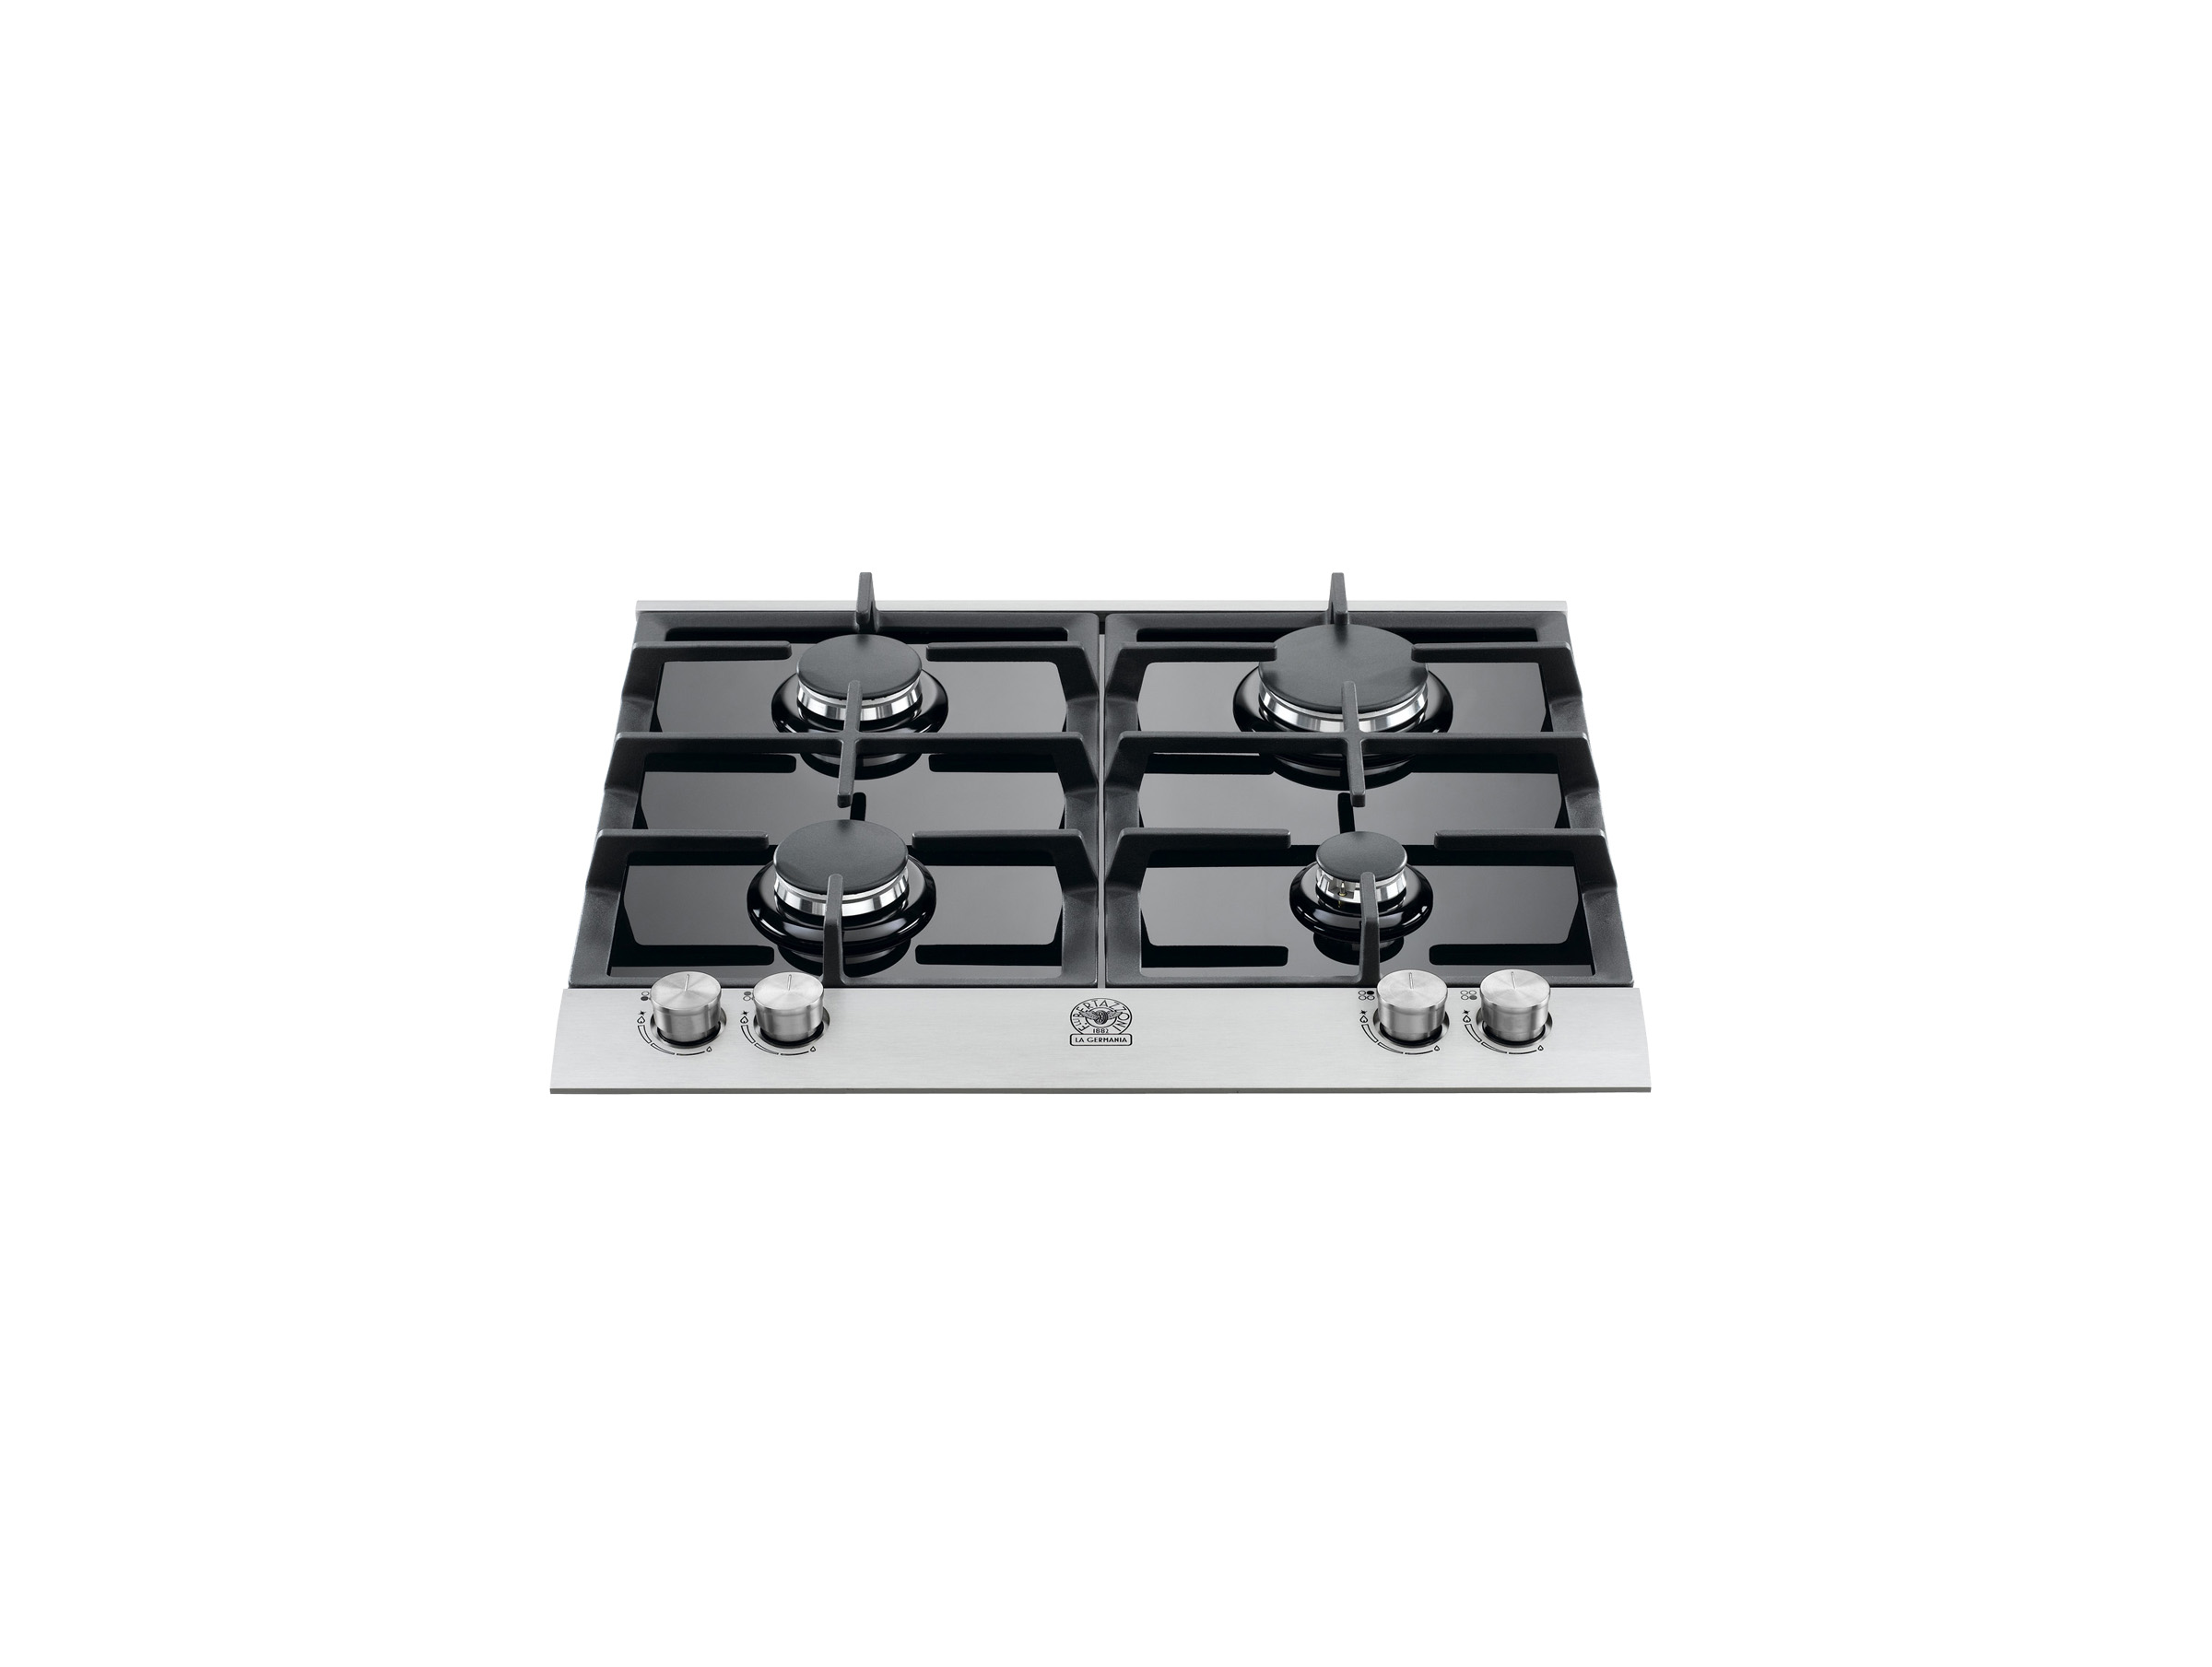 60 4-Burner Black Glass Hob | Bertazzoni La Germania - Black